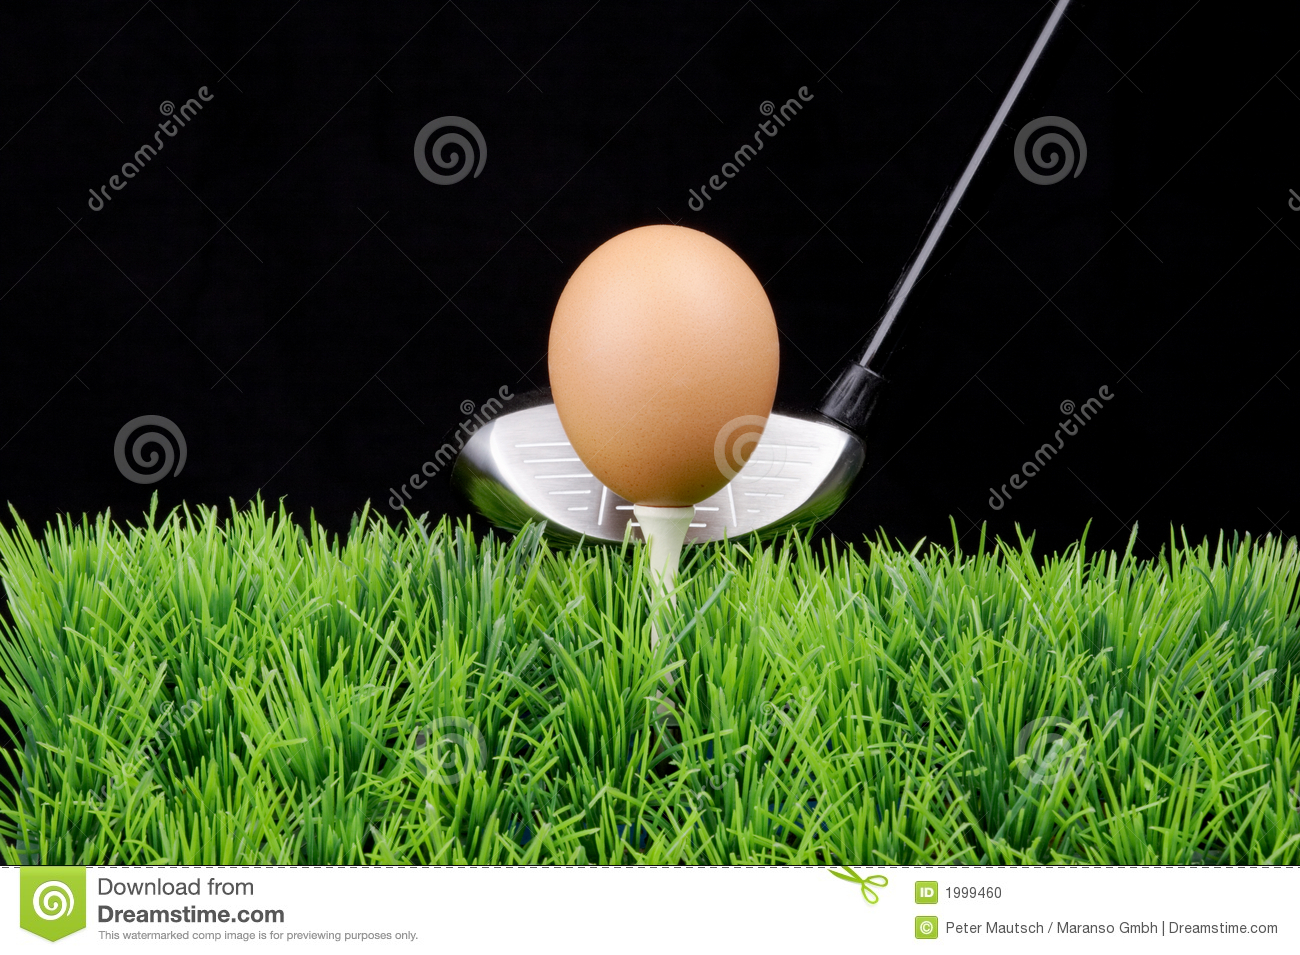 ... on a golf tee at the fairway, black background, Golf Driver behind Golf Ball On Tee Clipart